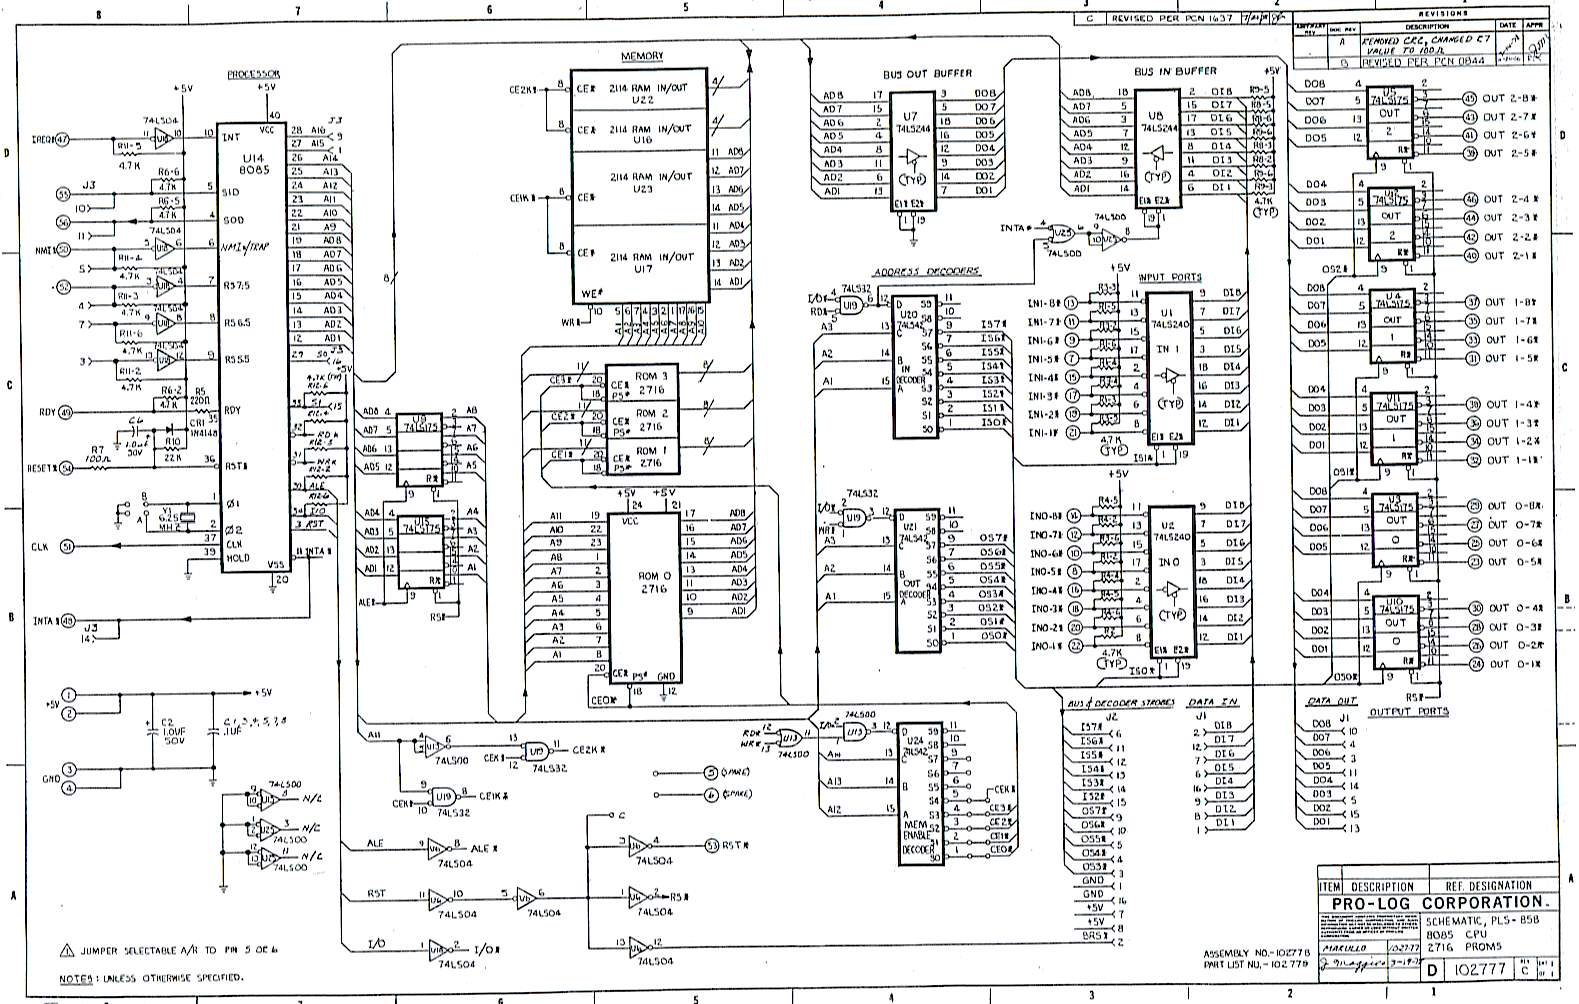 Prolog PLS858 SBC Schematic